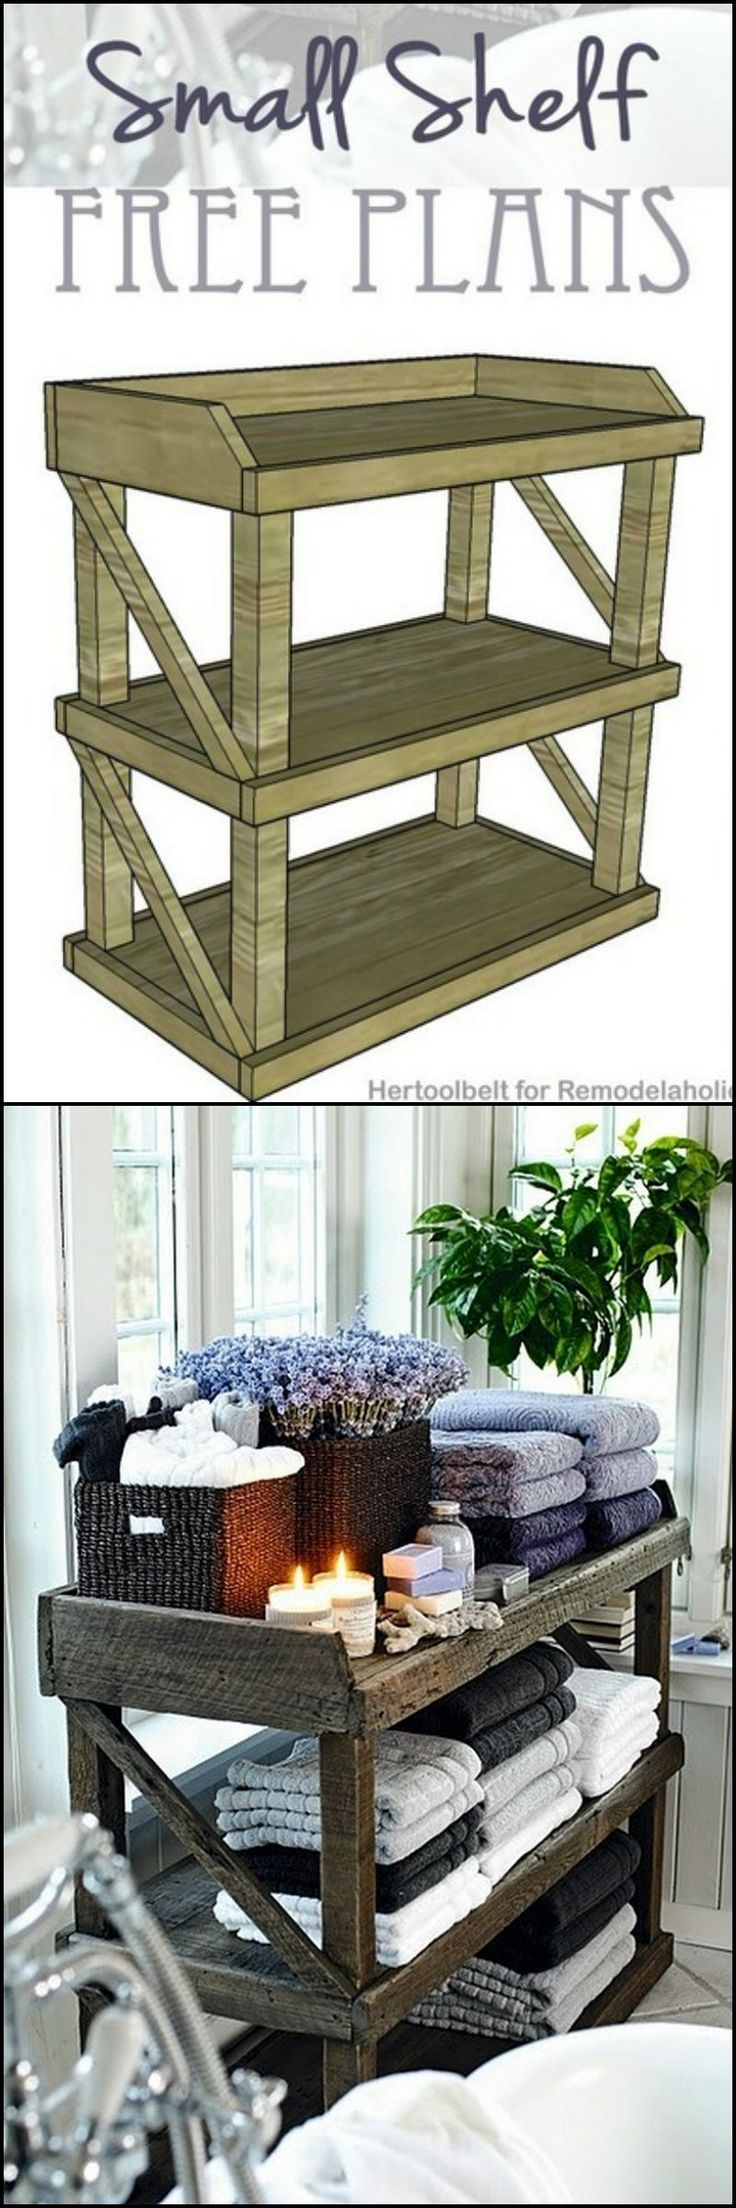 Building Plan: How To Build A Small Open Shelf  http://theownerbuildernetwork.co/easy-diy-projects/diy-storage-projects/diy-shelves-and-bookcases/building-plan-diy-small-open-shelf/  In this project Amy of Hertoolbelt was on the look out for a great bathroom storage solution.  She came across this small rustic tub side storage shelf. We think it's a great find as it has lots of storage space, and it's rustic look is sure to fit in almost any style of bathroom.